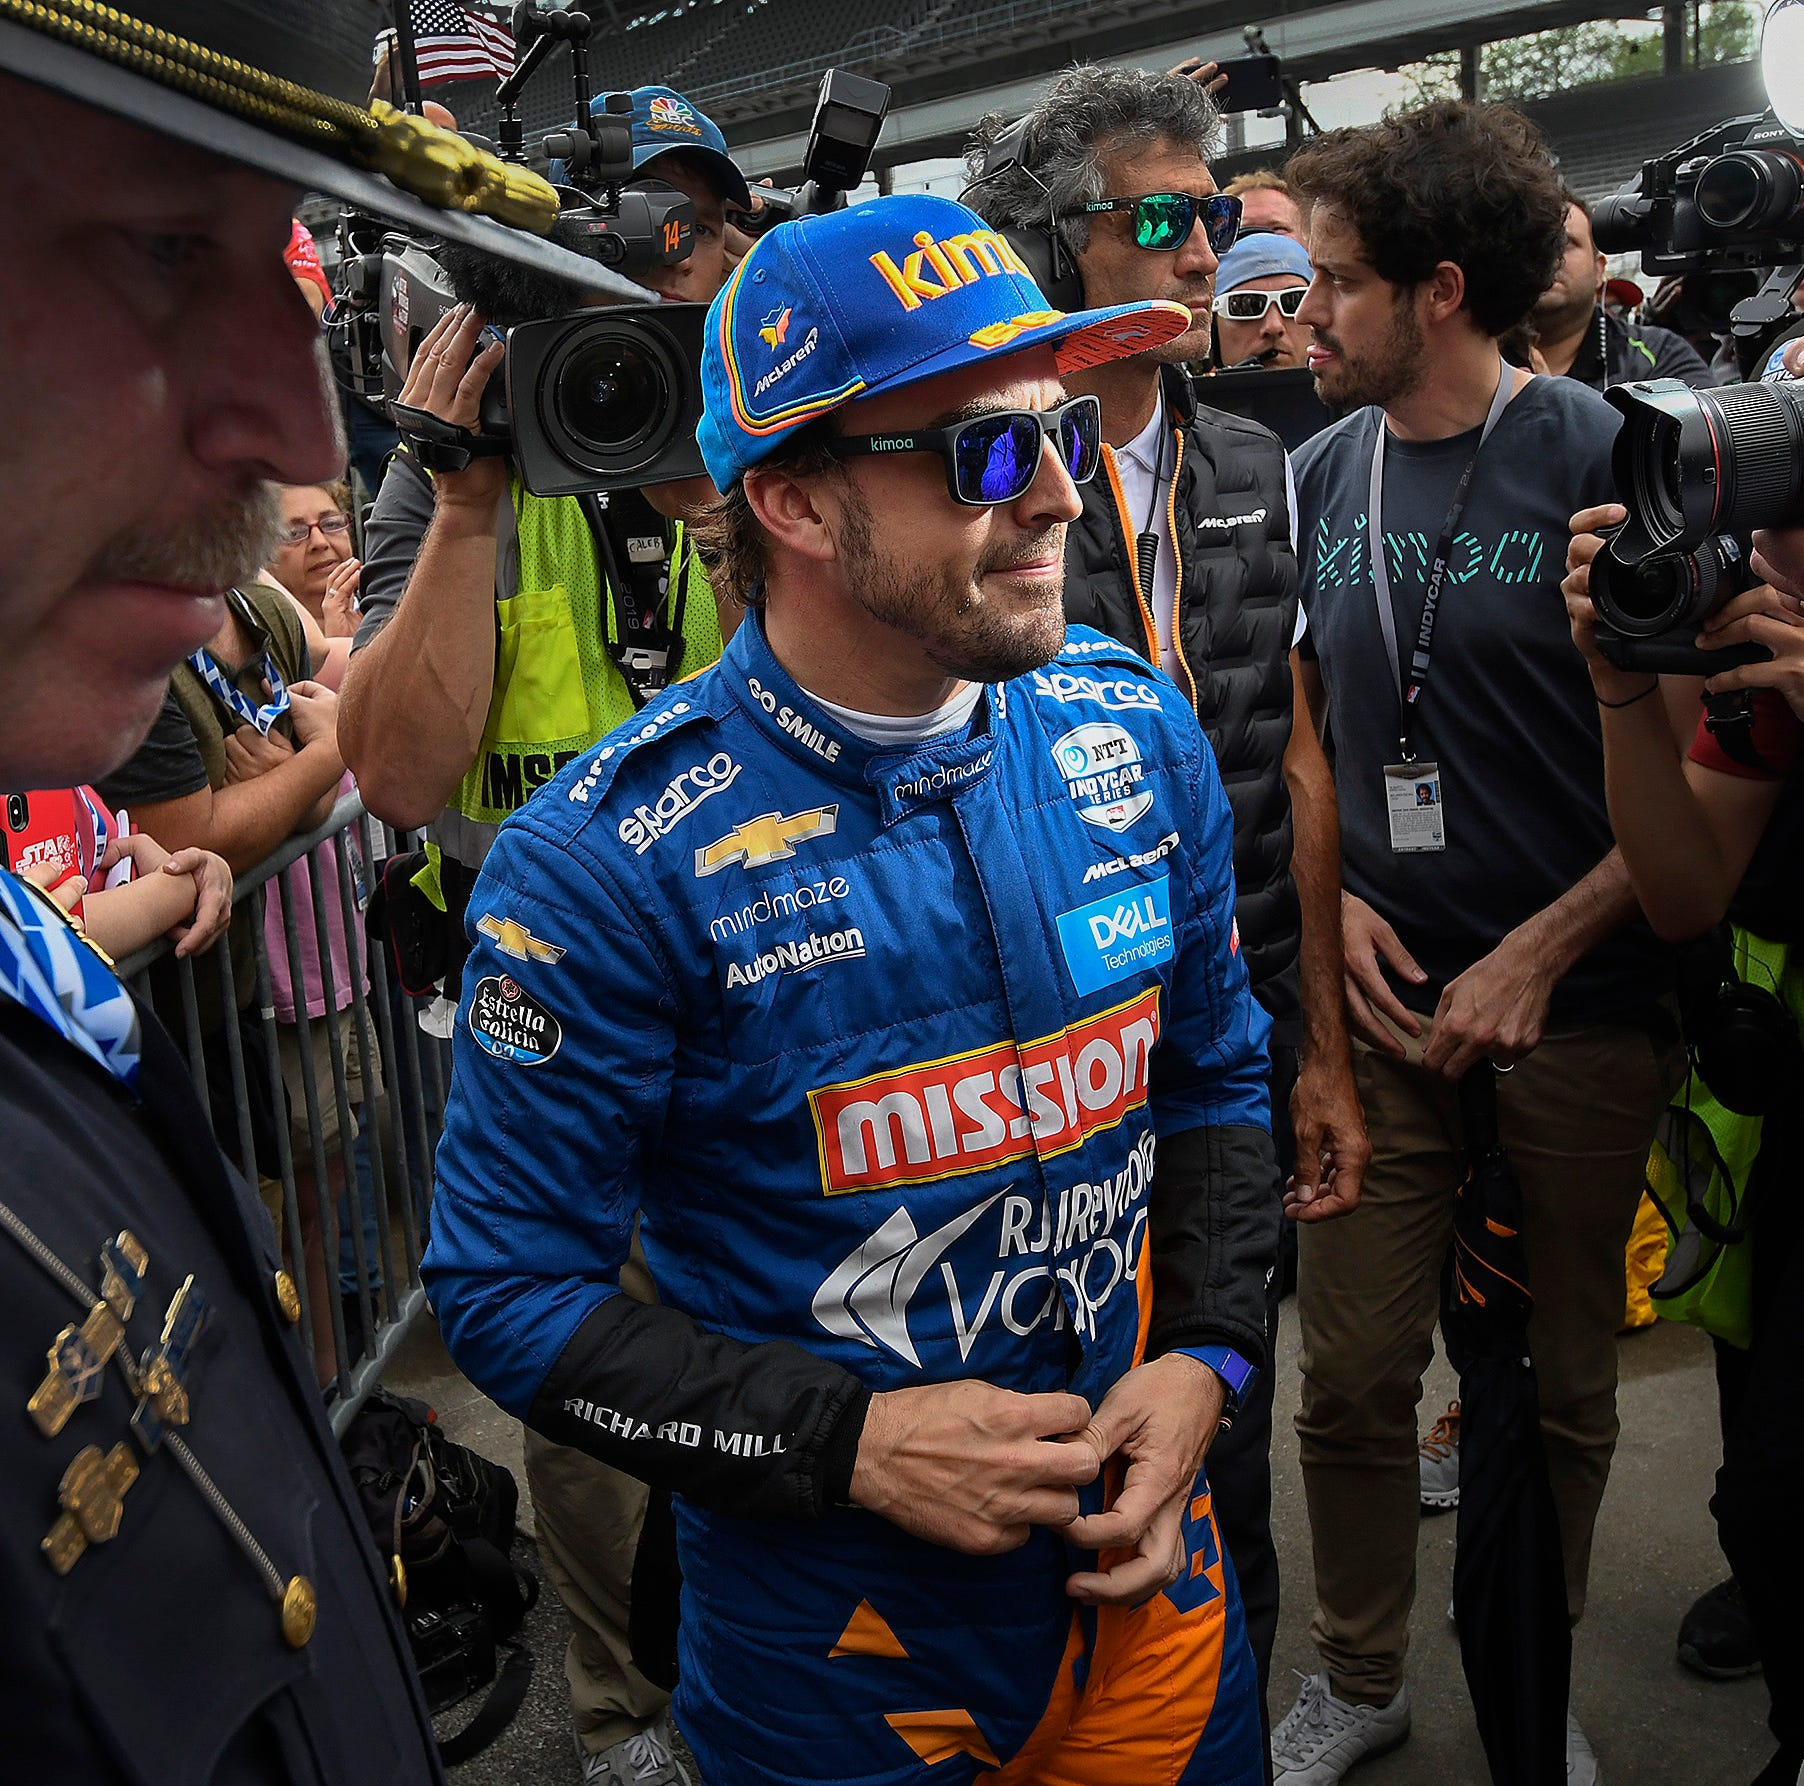 Doyel: Fernando Alonso out of 2019 Indy 500 because McLaren wasn't prepared